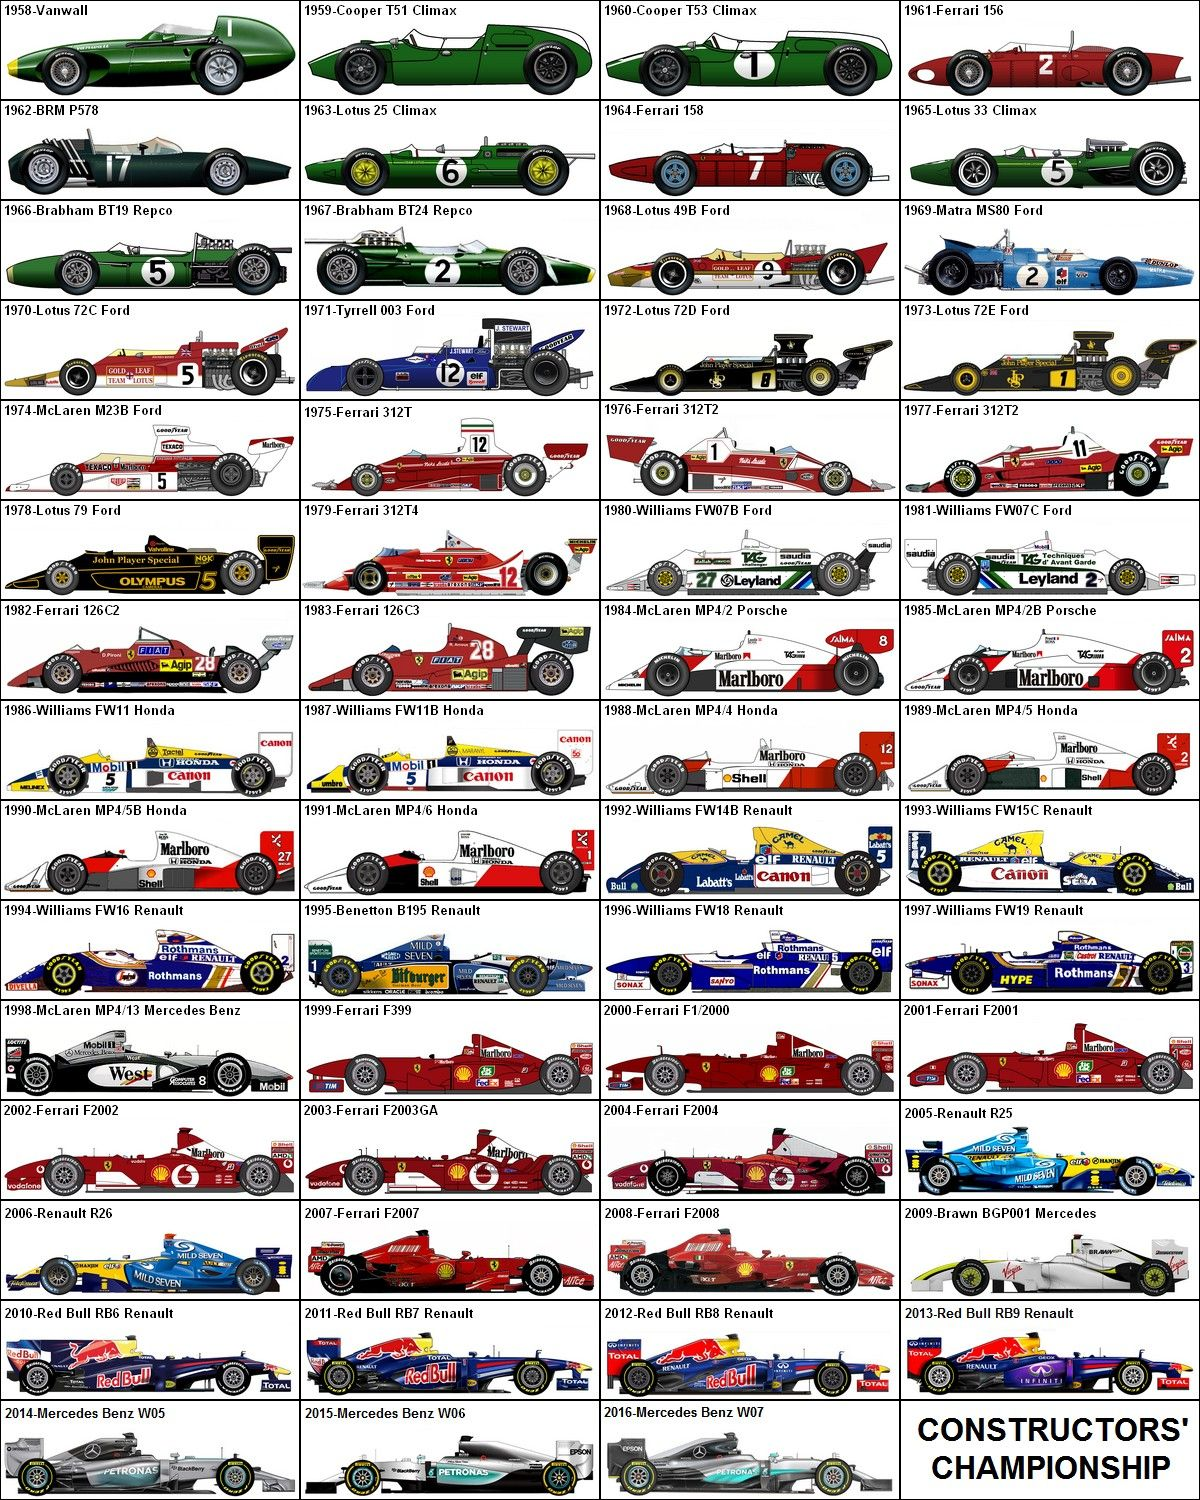 ALL FORMULA ONE F1 RACE CARS 1950-2016 POSTER PRINT 32x36 9 MIL PAPER